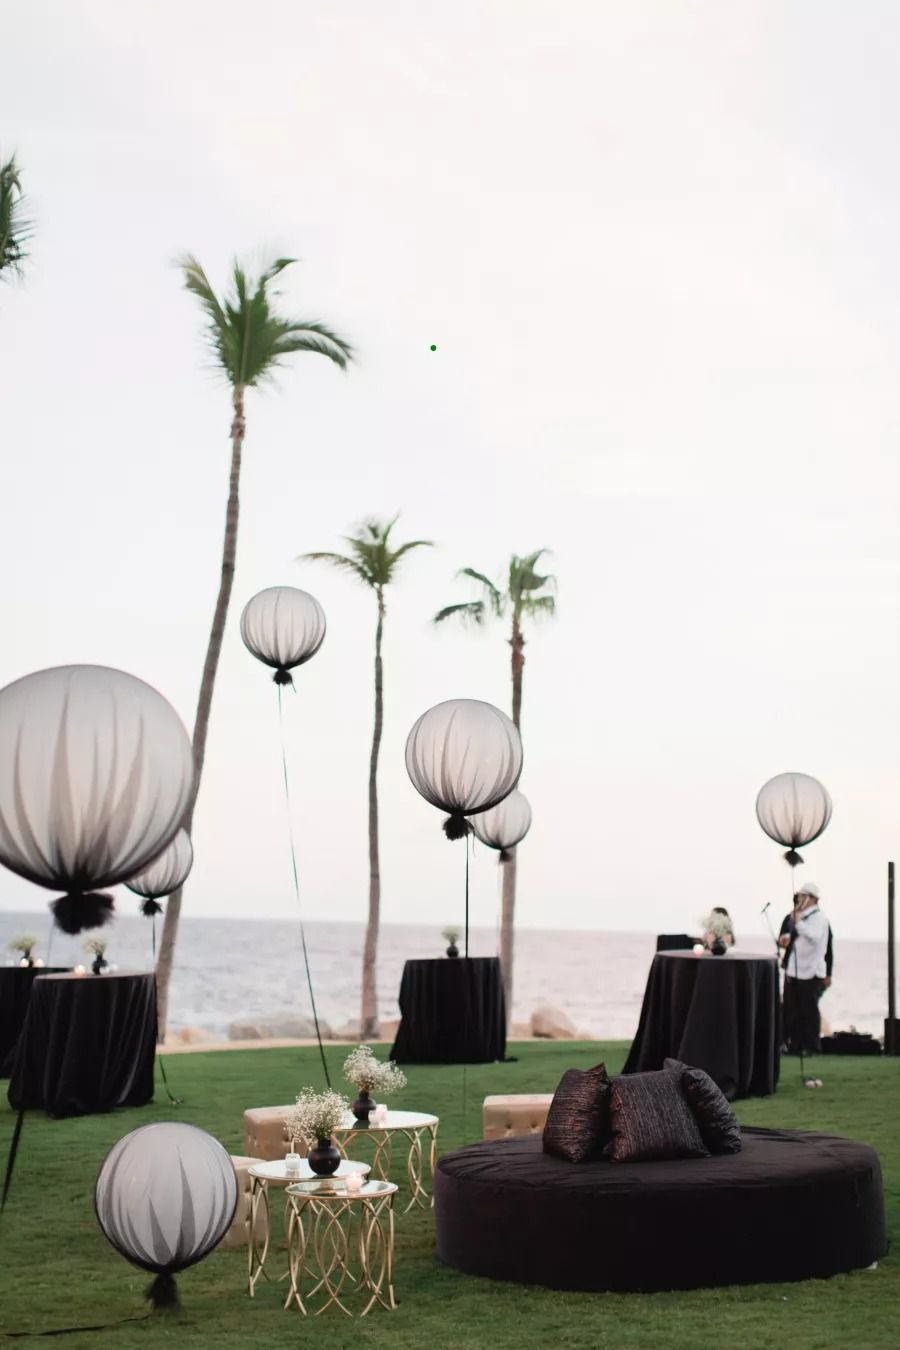 Oversize balloons covered in black tulle